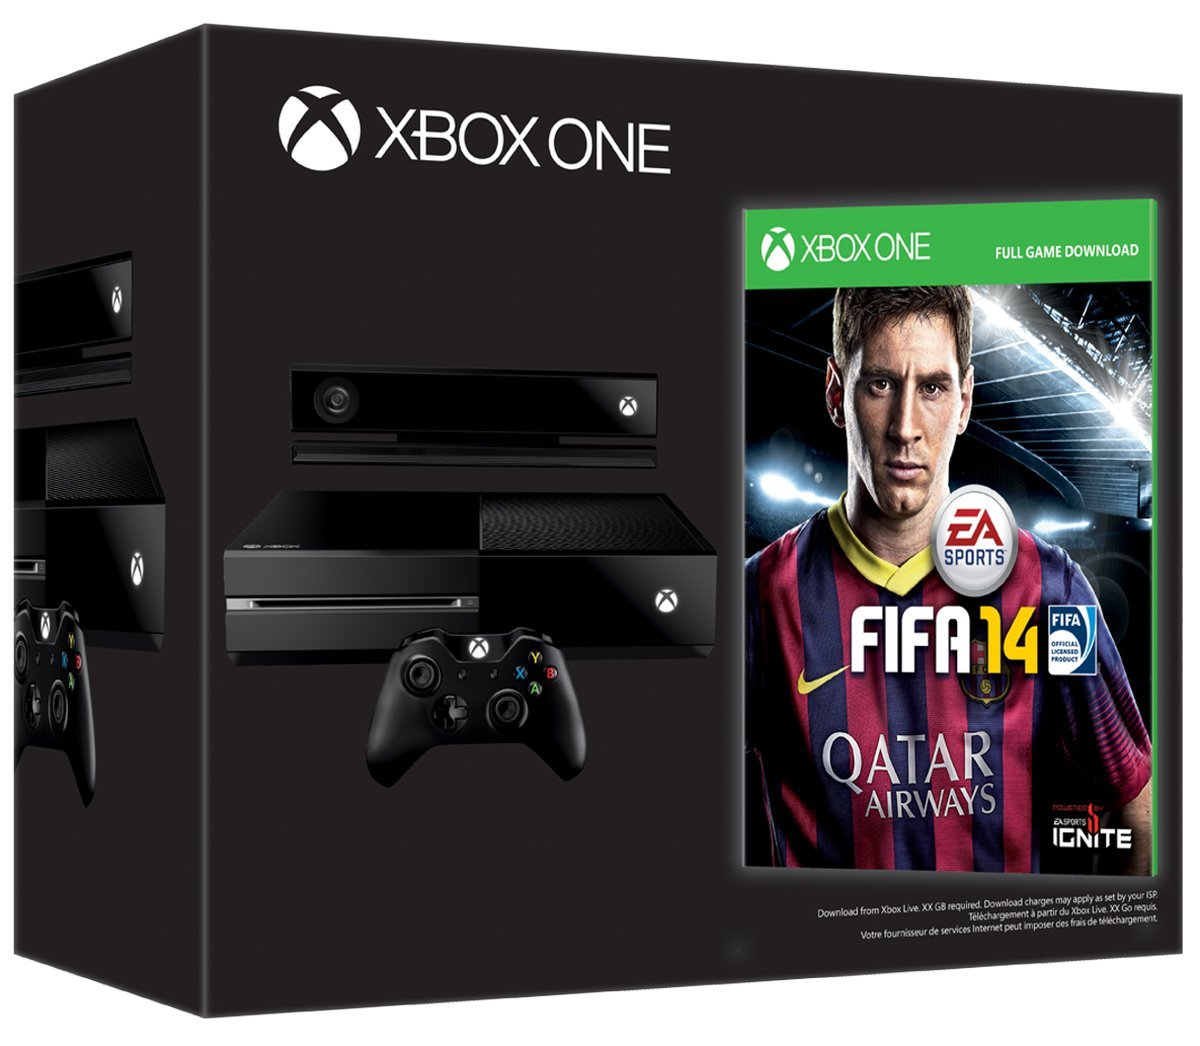 Xbox One Console: Day One Edition (with FIFA 14 download code